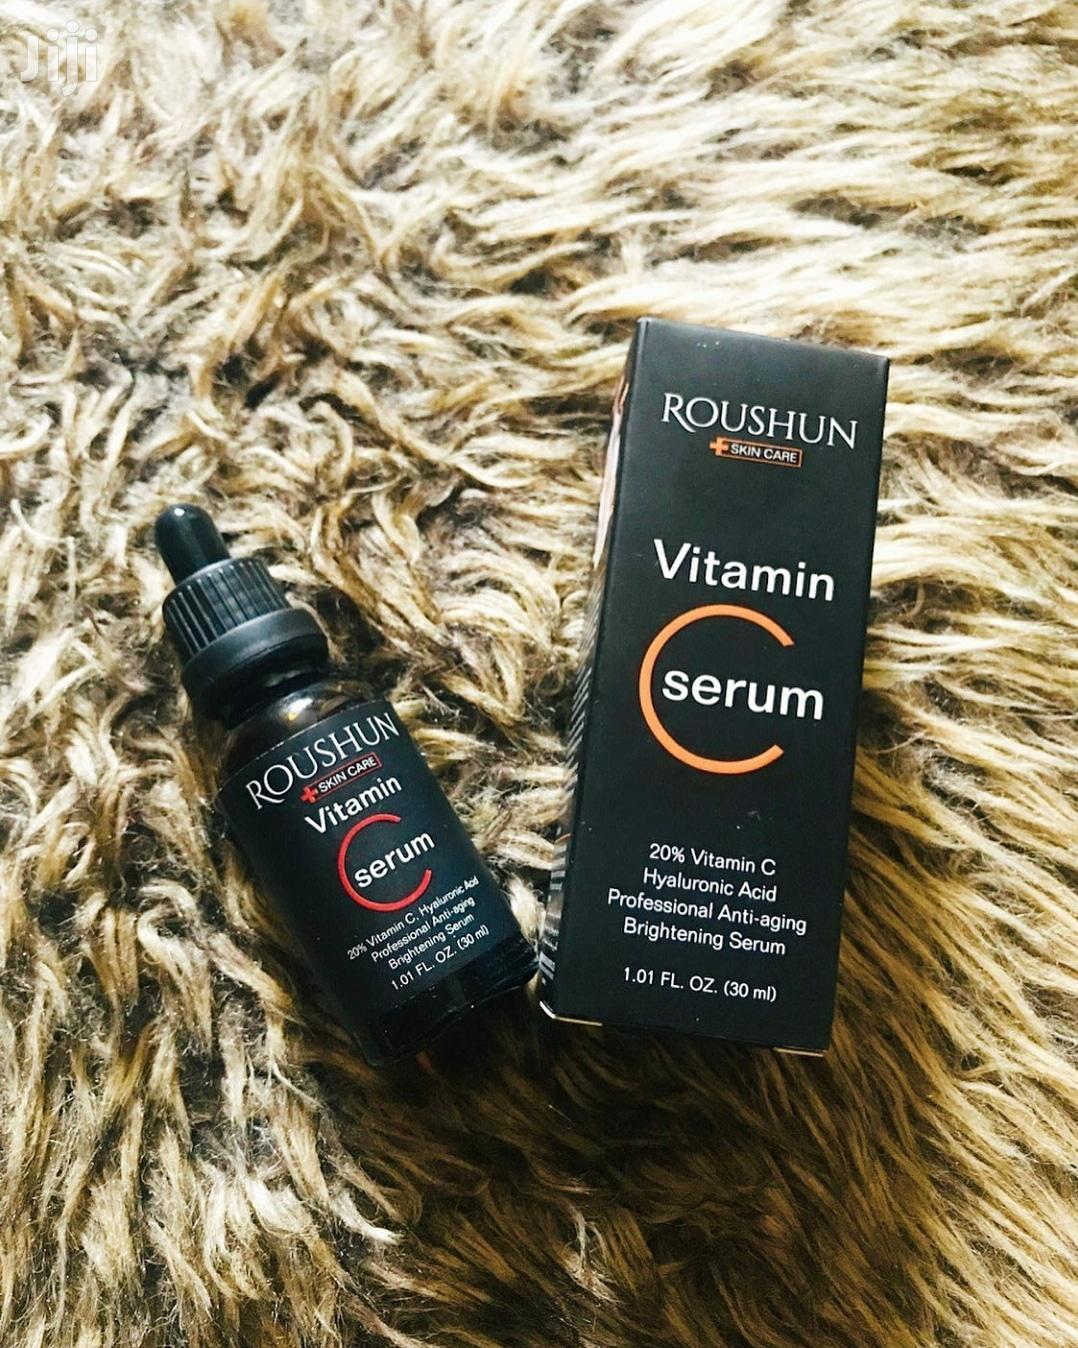 Roshun Vitamin C Serum